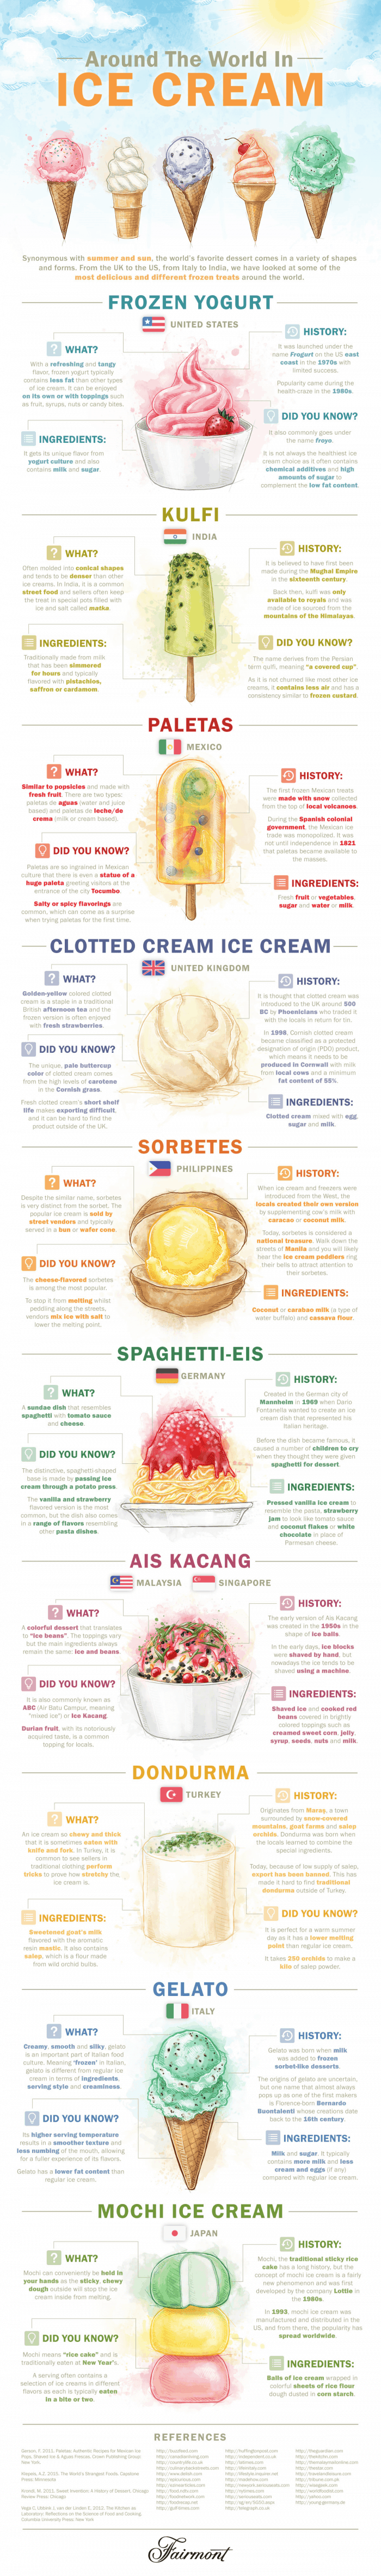 Infographic showing some interesting types of ice cream from around the world